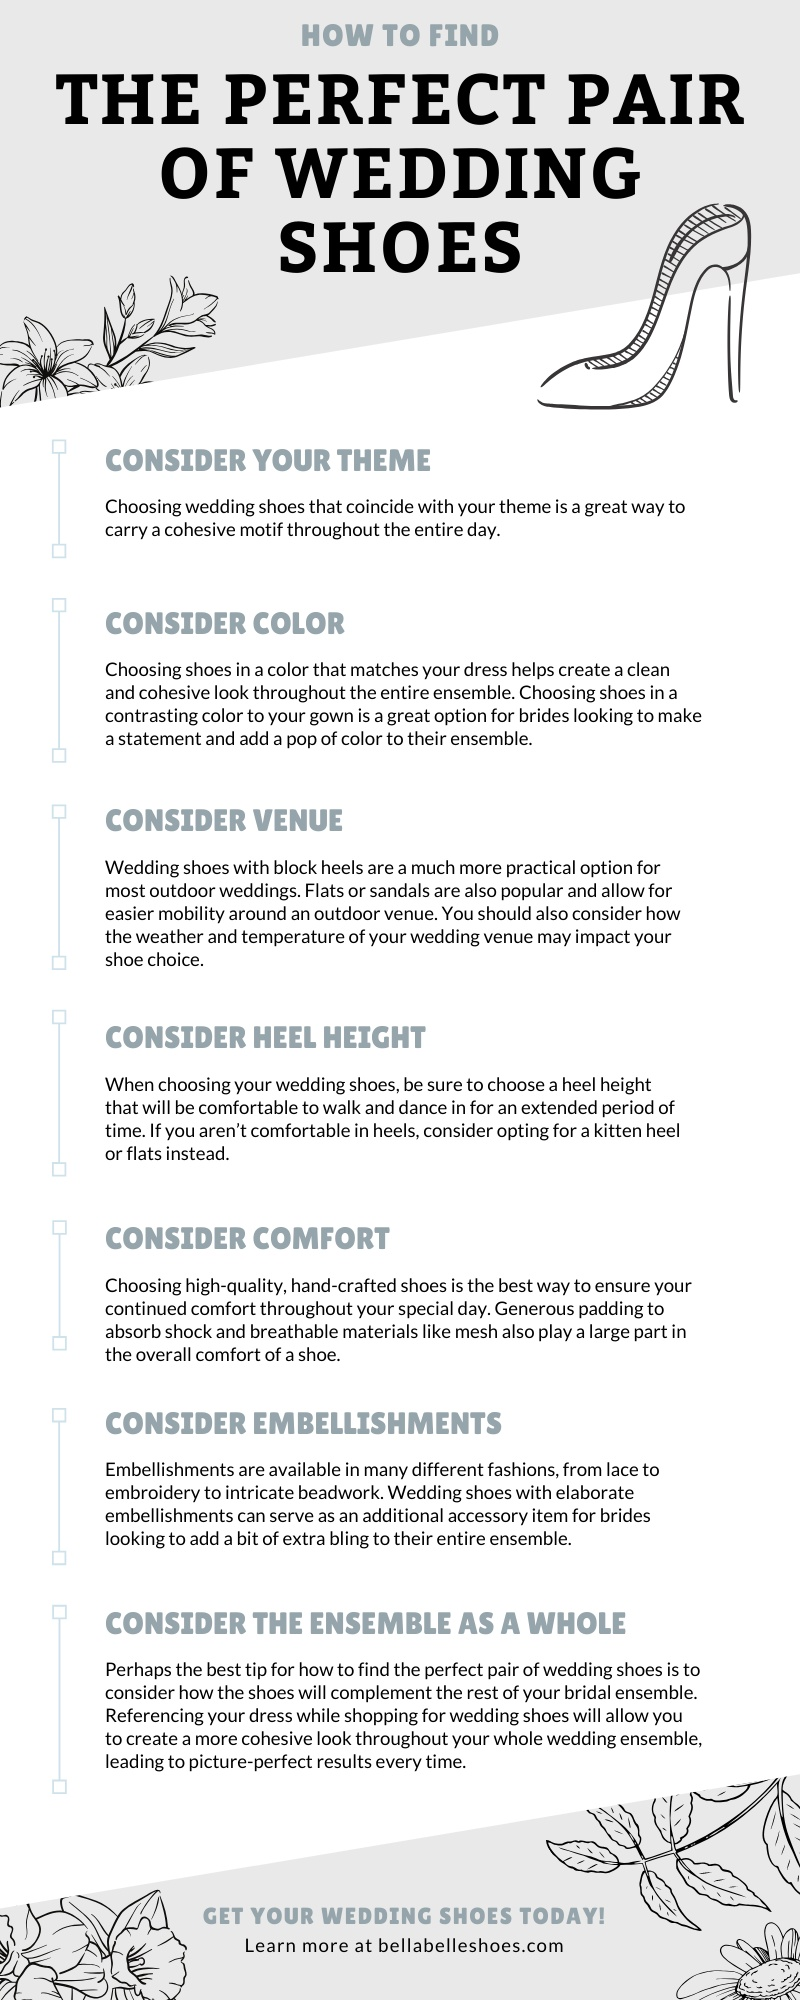 Infographic exaplinging different factors to consider when choosing wedding shoes such as theme, color, venue, heel height, comfort, embellishments, and the ensemble as a whole.